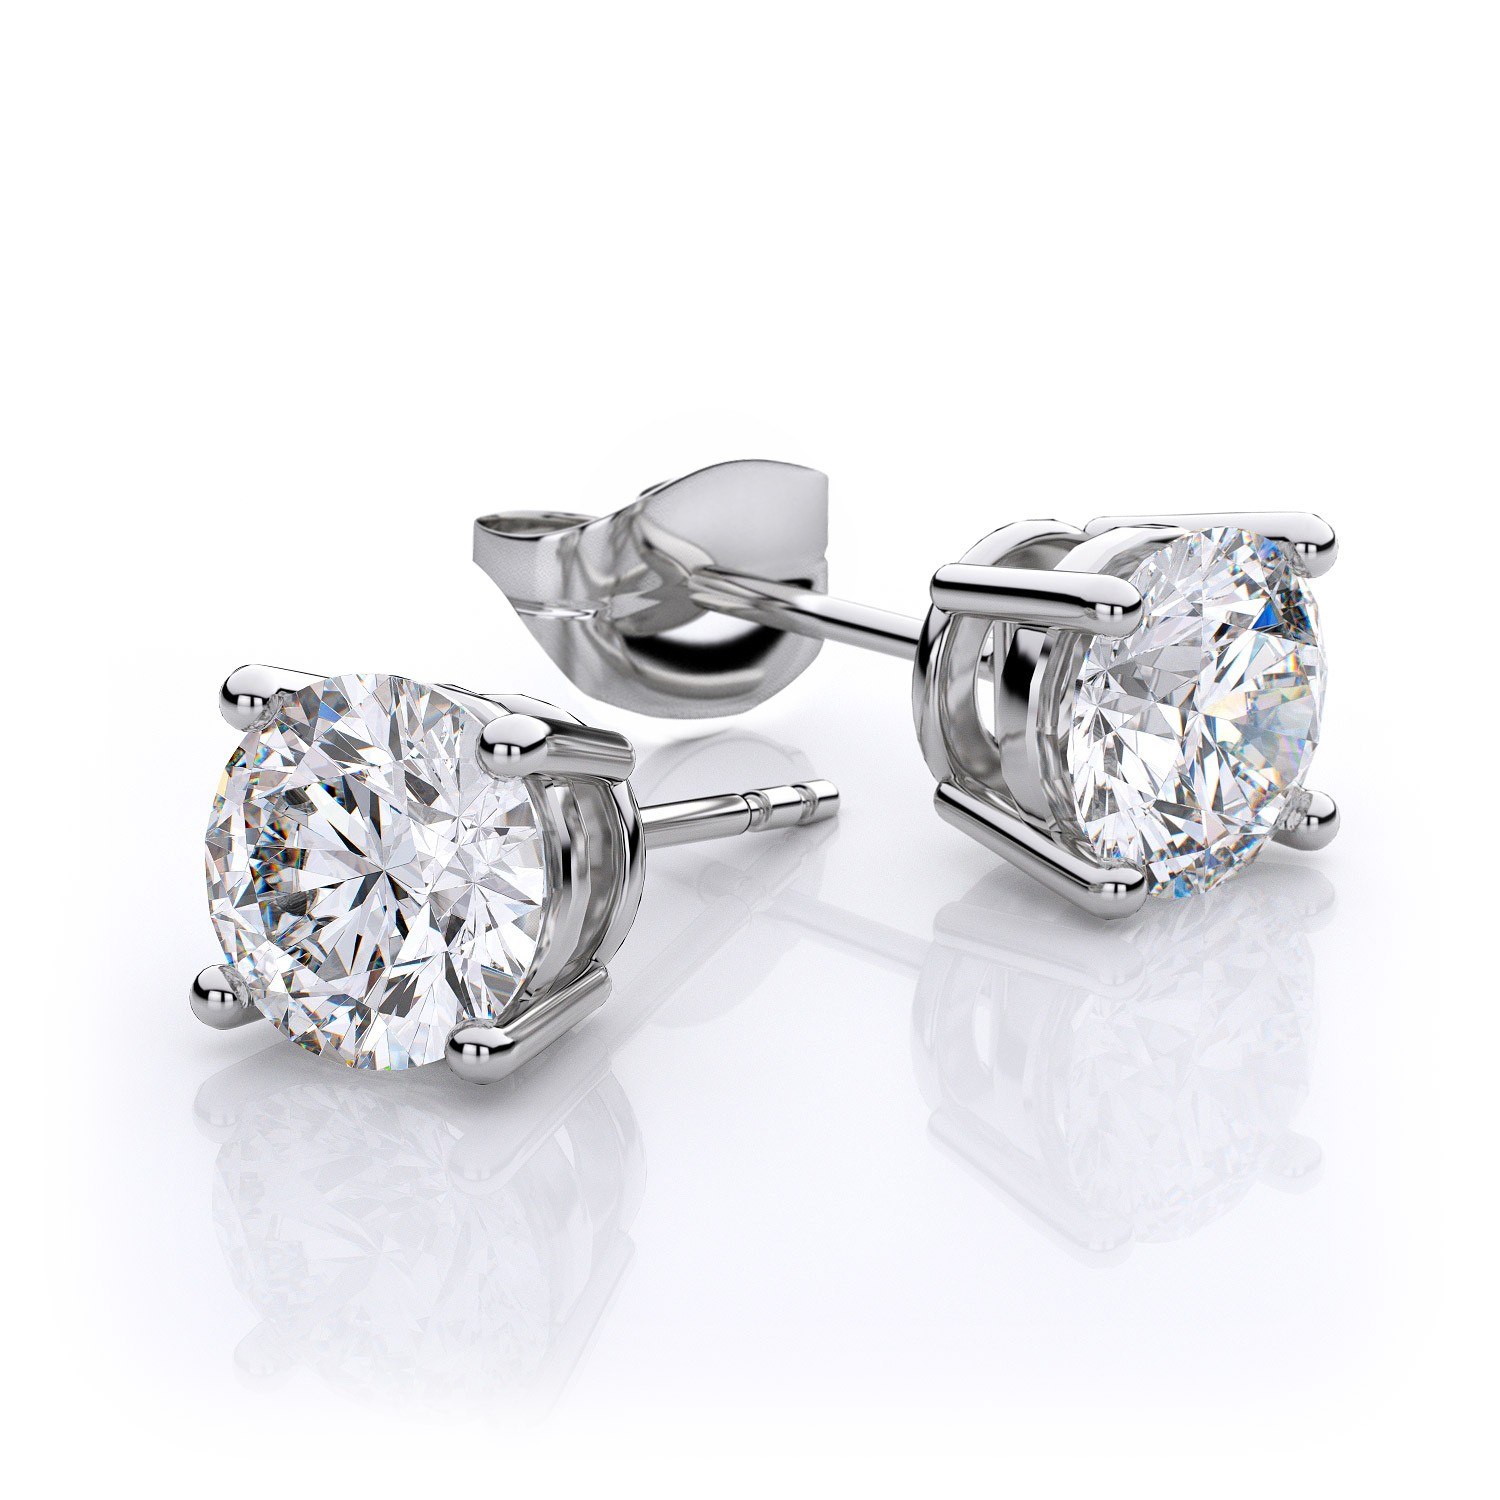 jewellery diamond products earrings pid bloomy studs